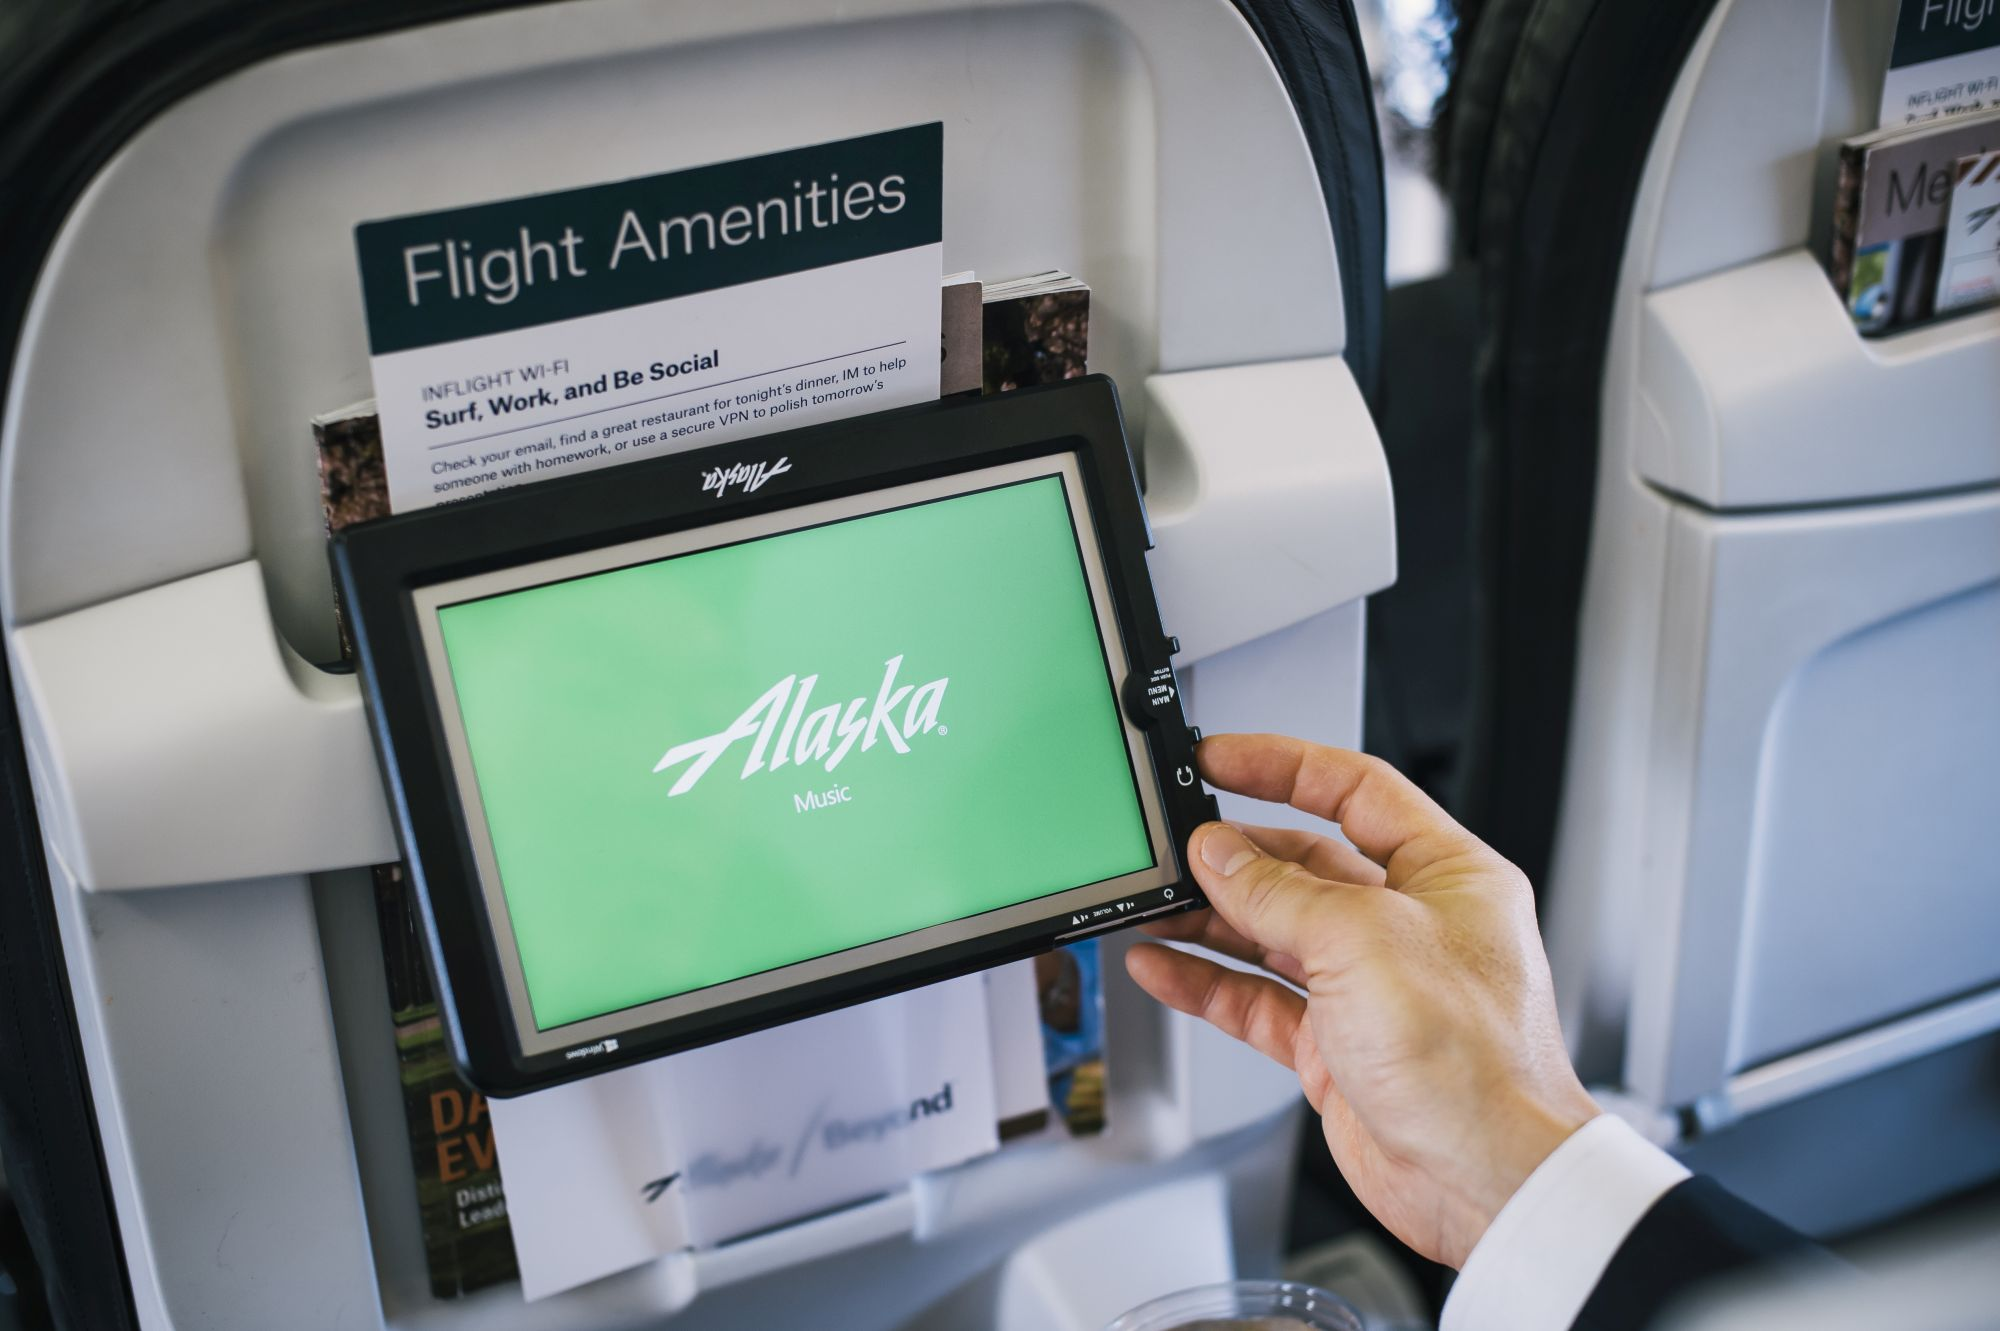 Alaska Airlines updates Inflight Entertainment tablets